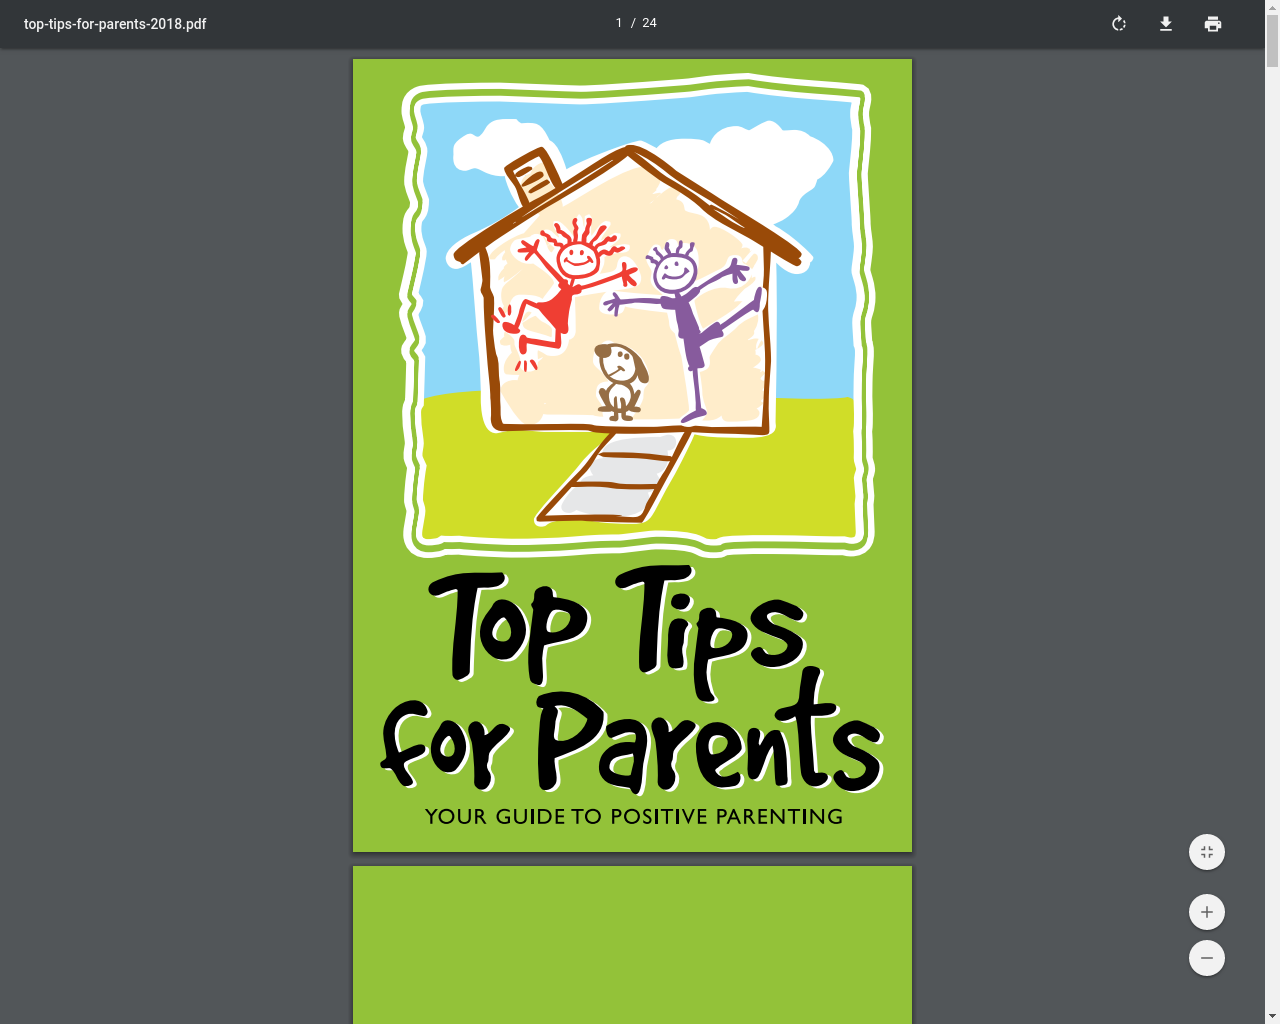 Top Tips for Parents